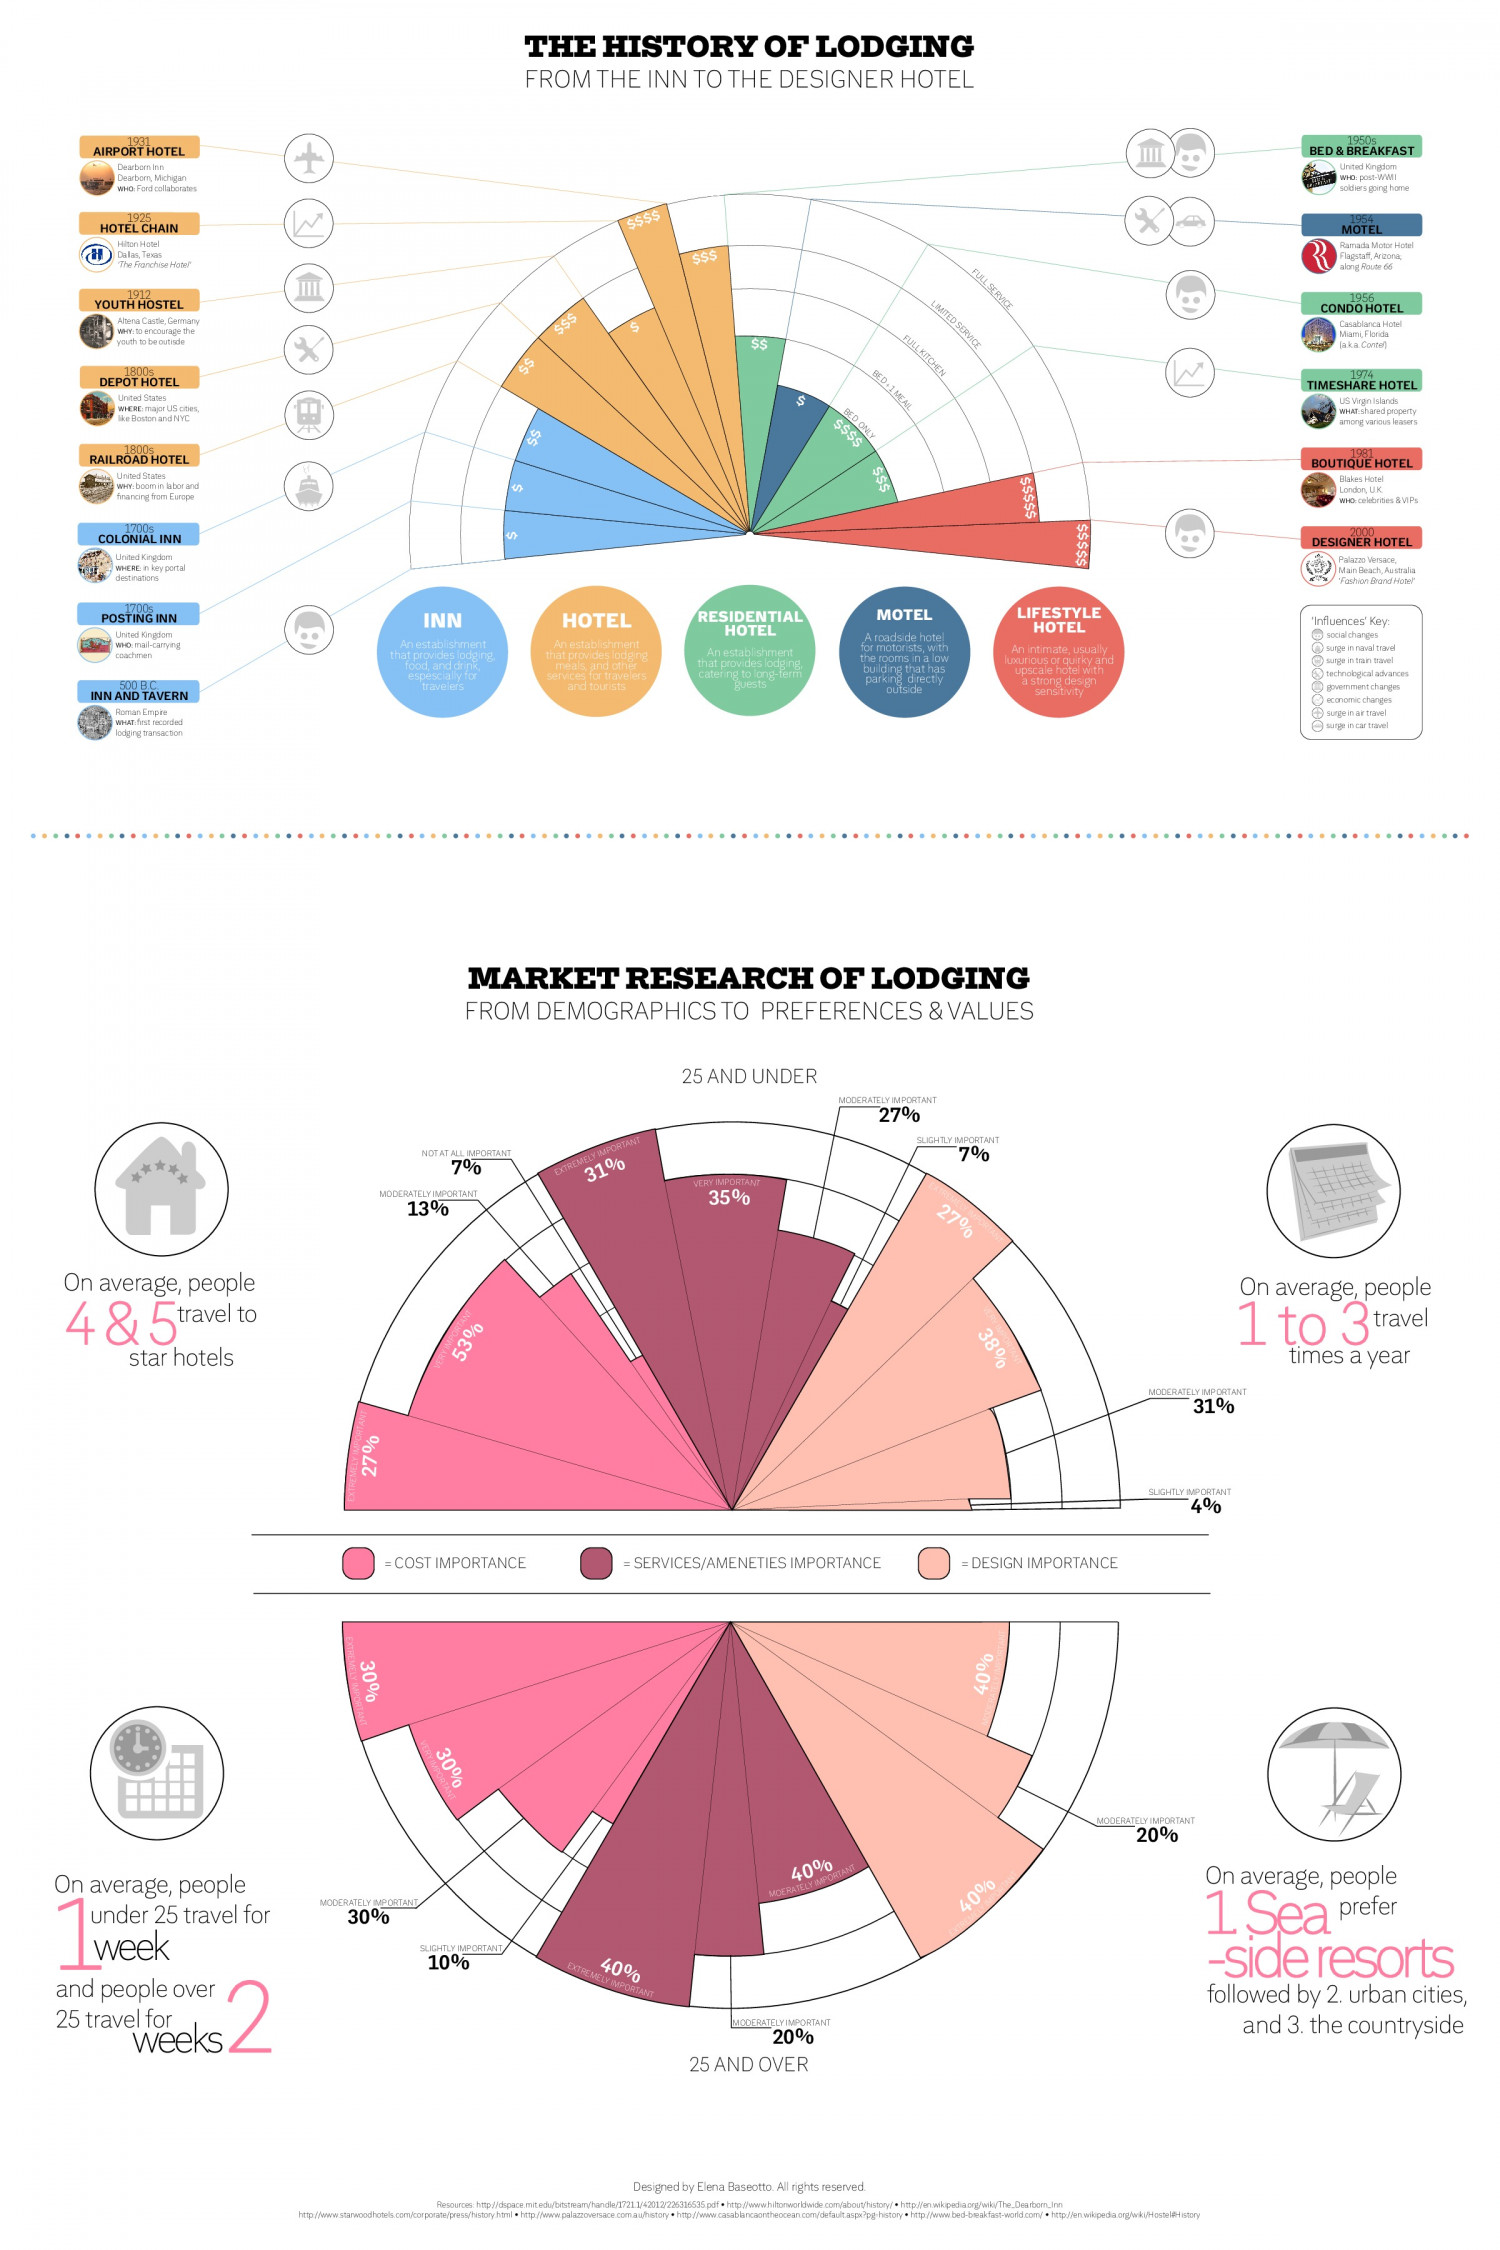 Lodging History and Market Analysis Infographic